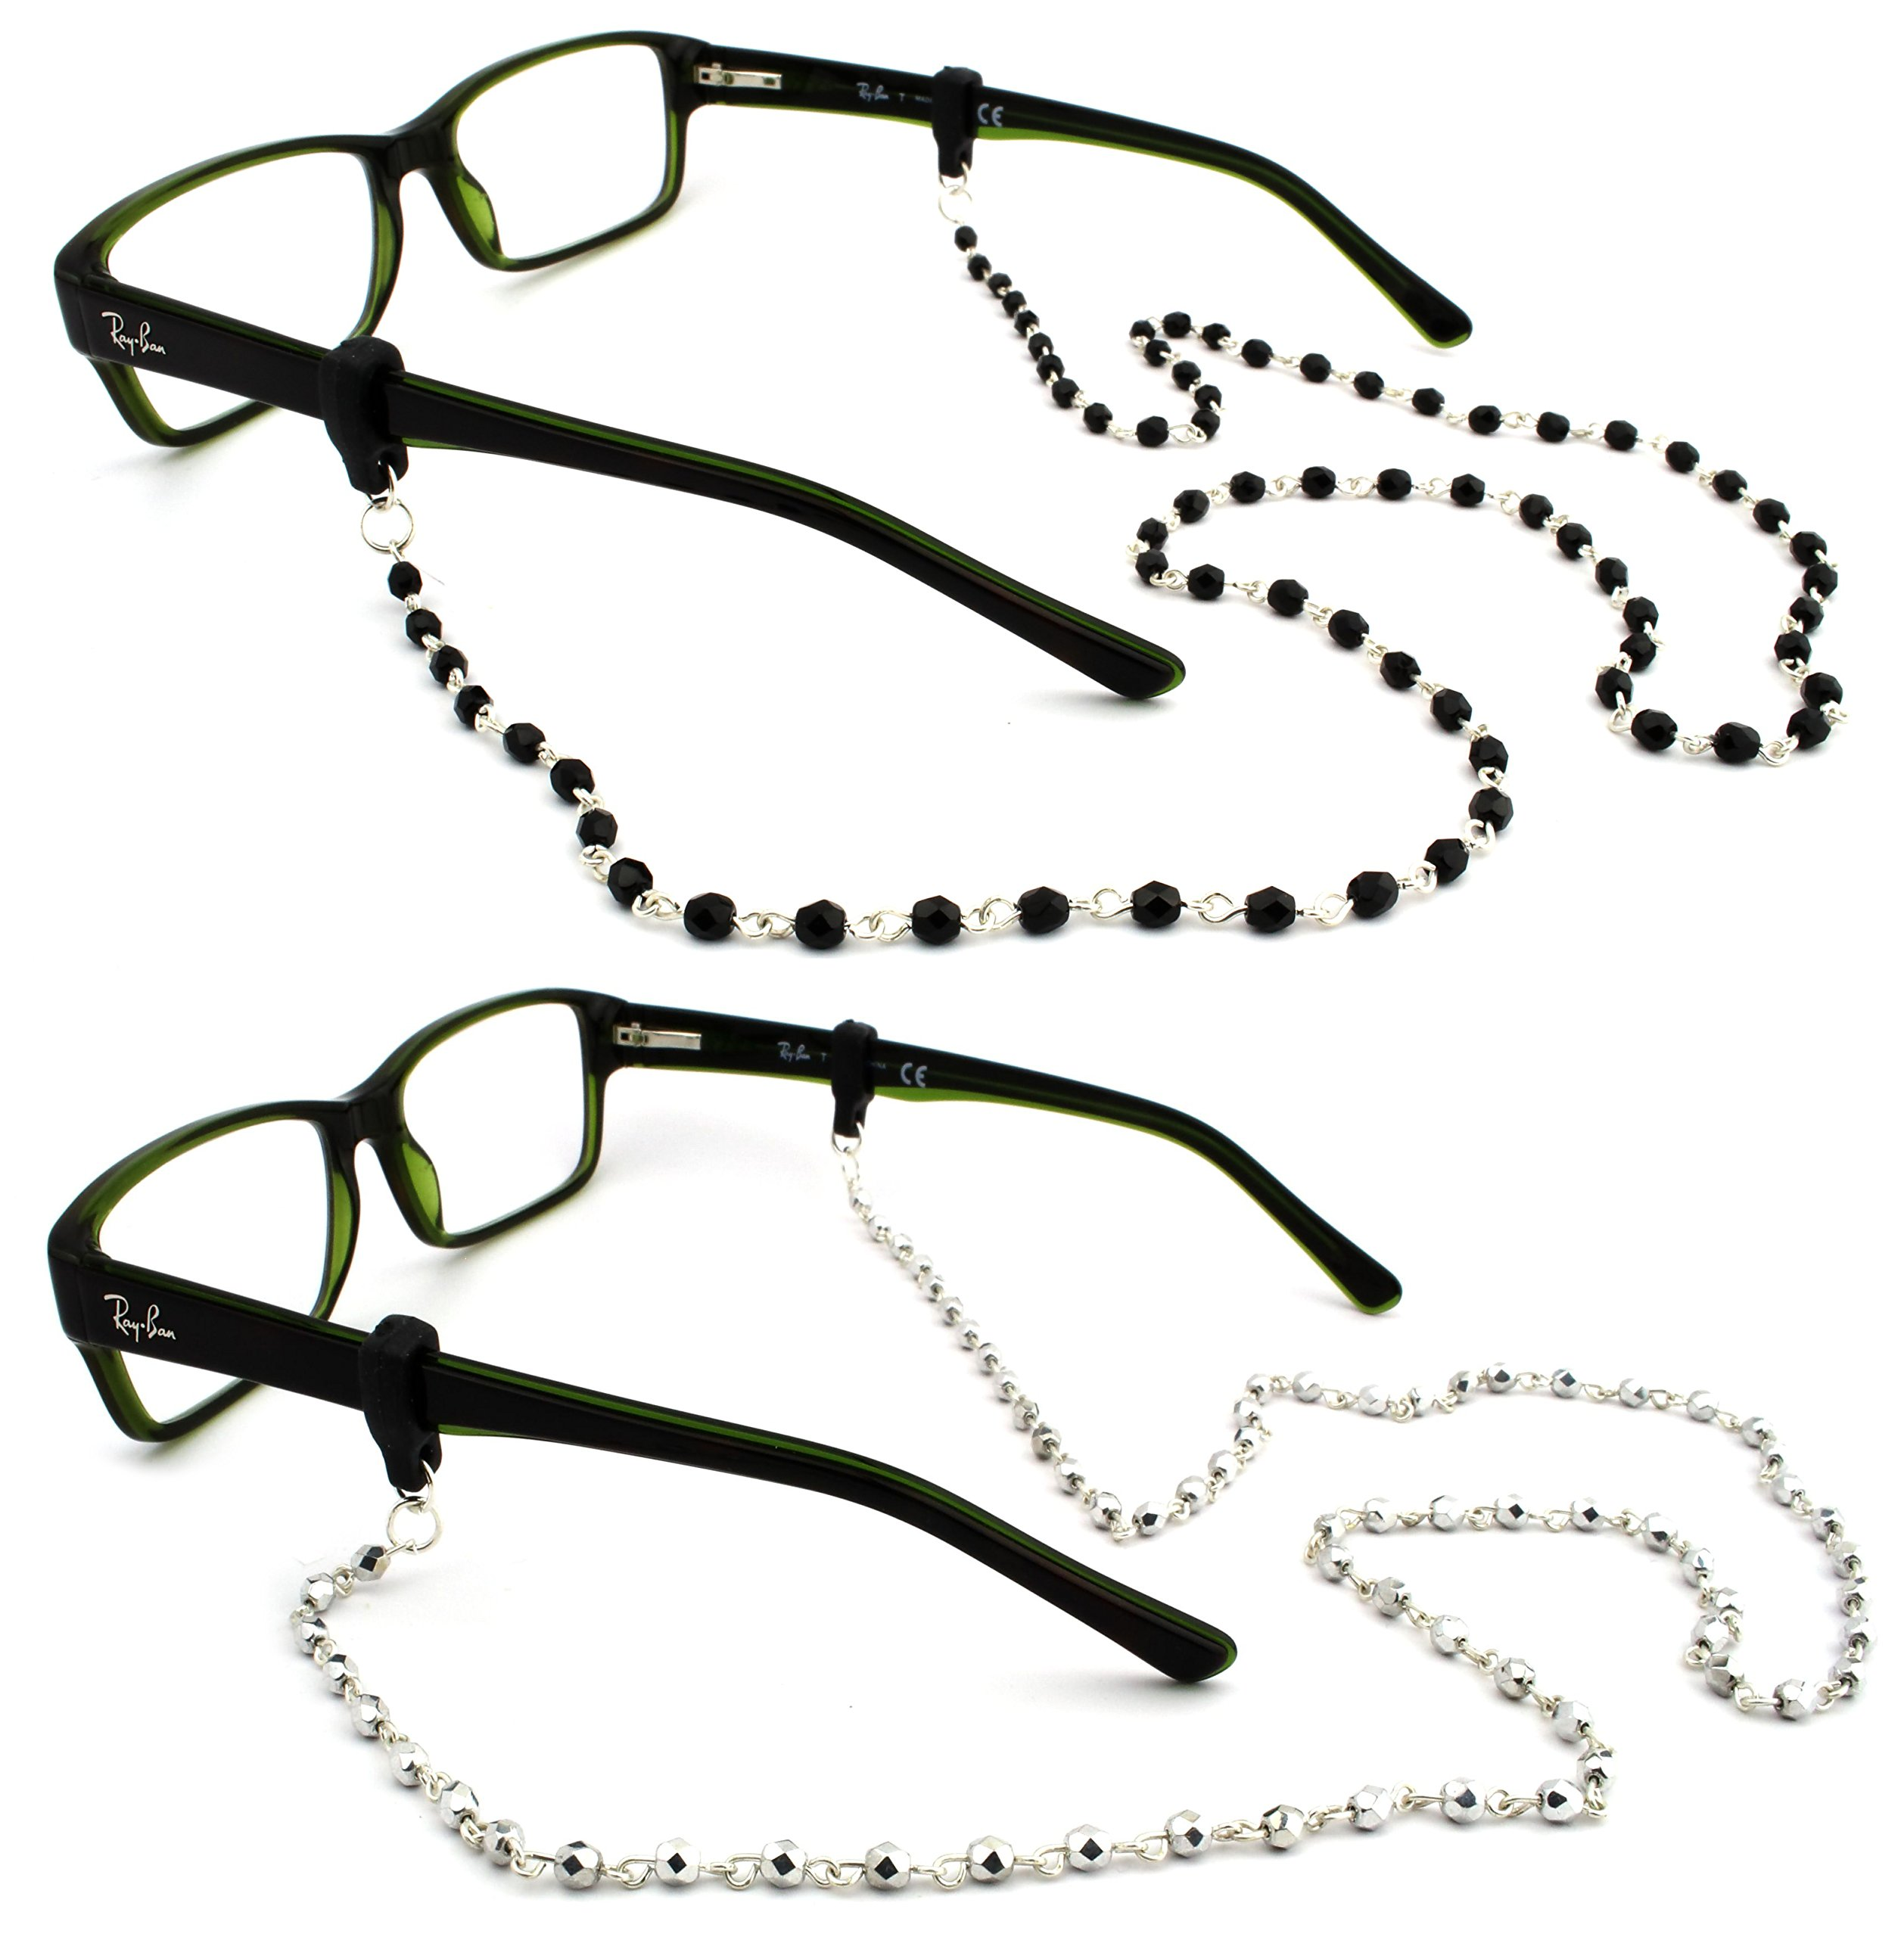 Peeper Keepers Czech Beads & Chains, Eyeglass Retainer, Assortment(4), 2pk mix, w/Cloth & Screwdriver by Peeper Keepers